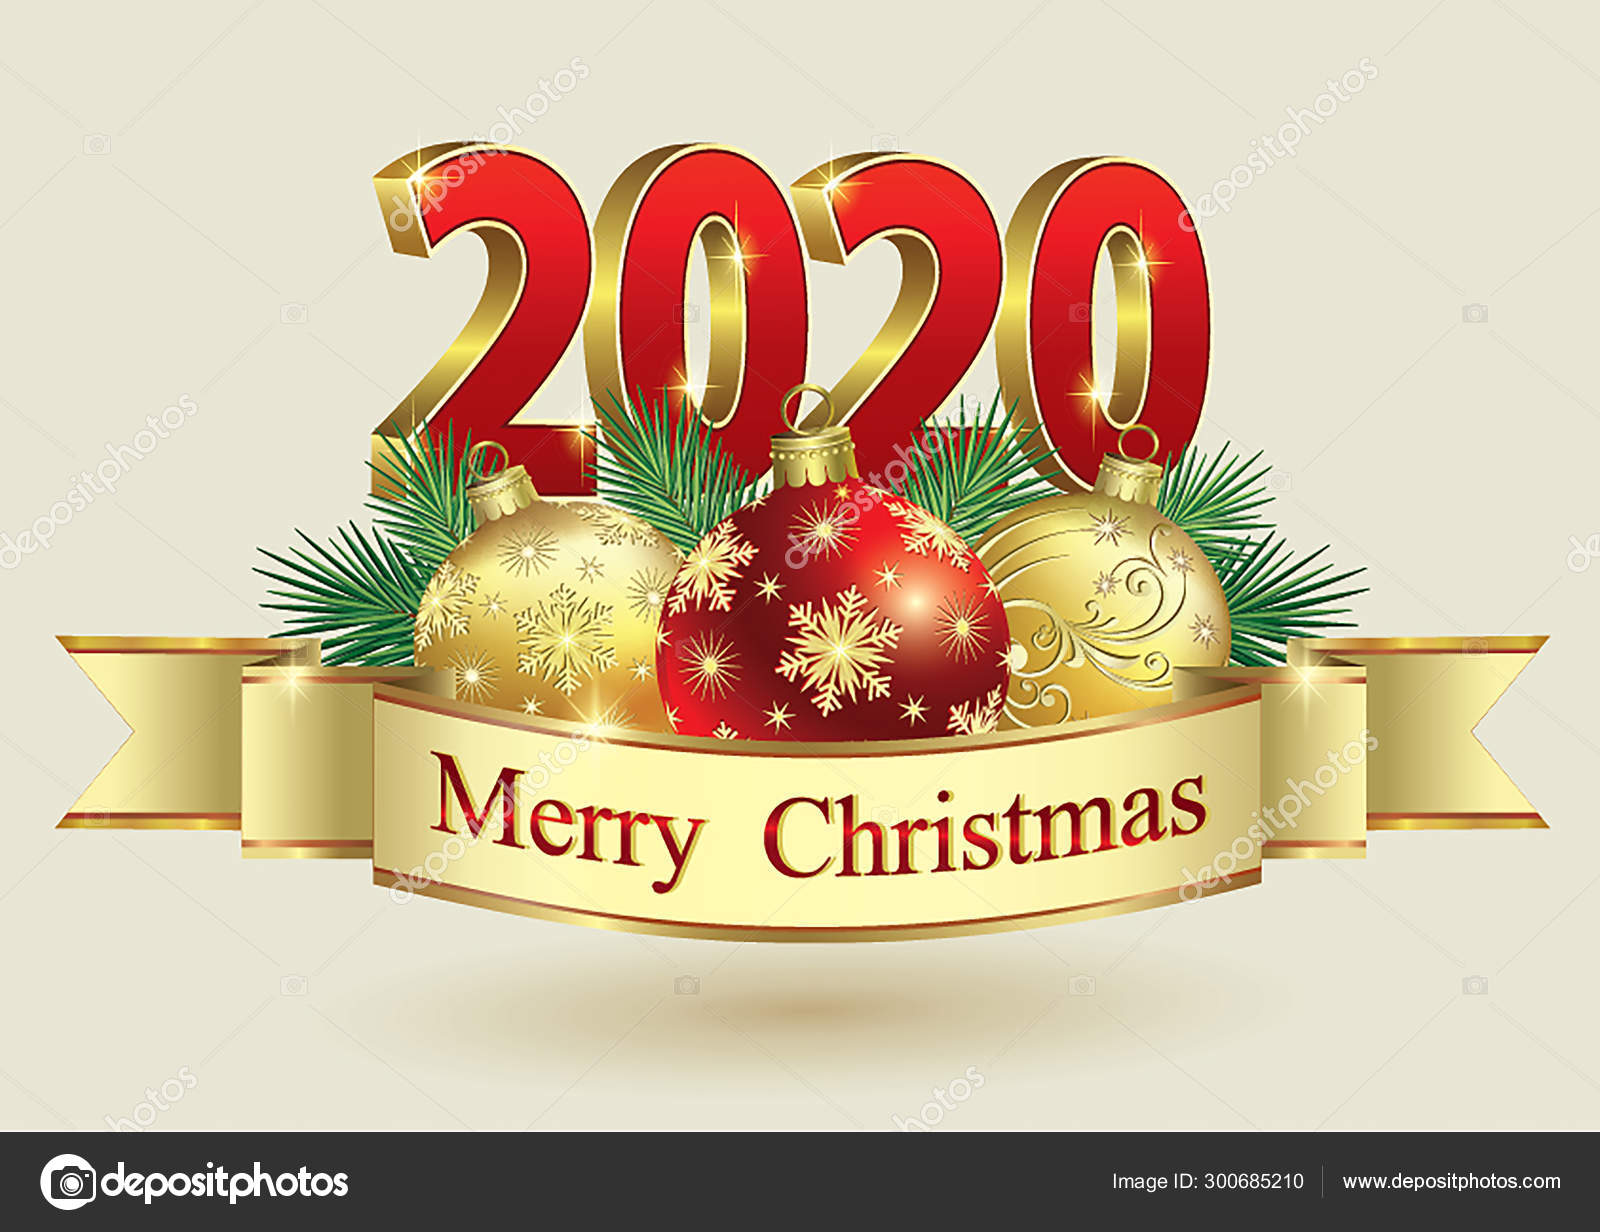 Merry Christmas 2020 3d Ornament Happy New Year 2020. Christmas decoration,vector gold design